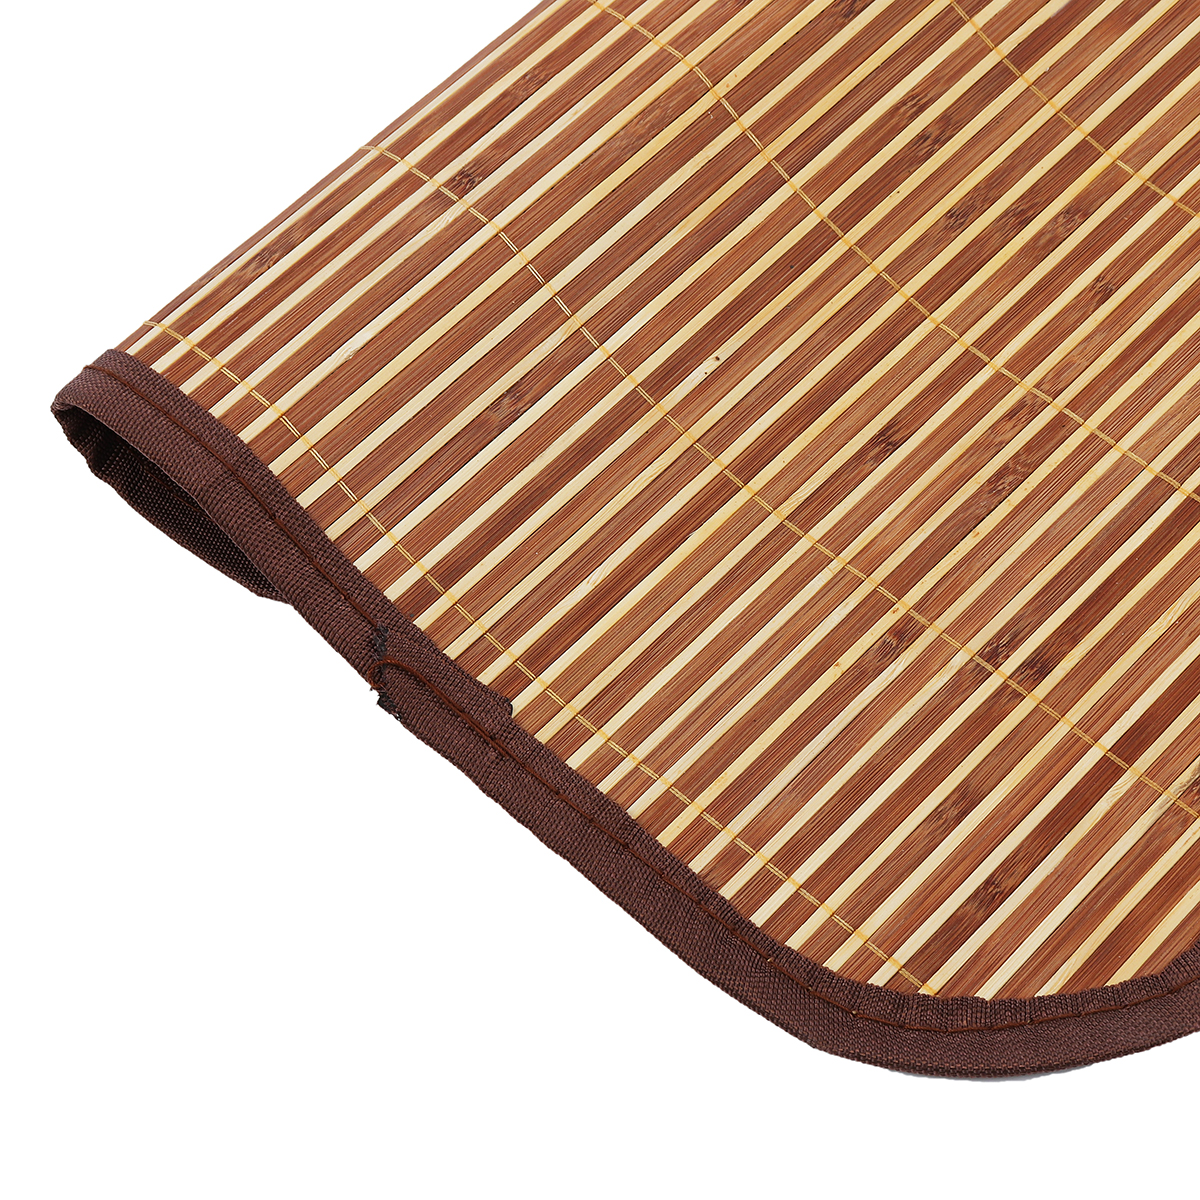 Summer Cool Chair Seat Cushion Bamboo Cover Pads for Home